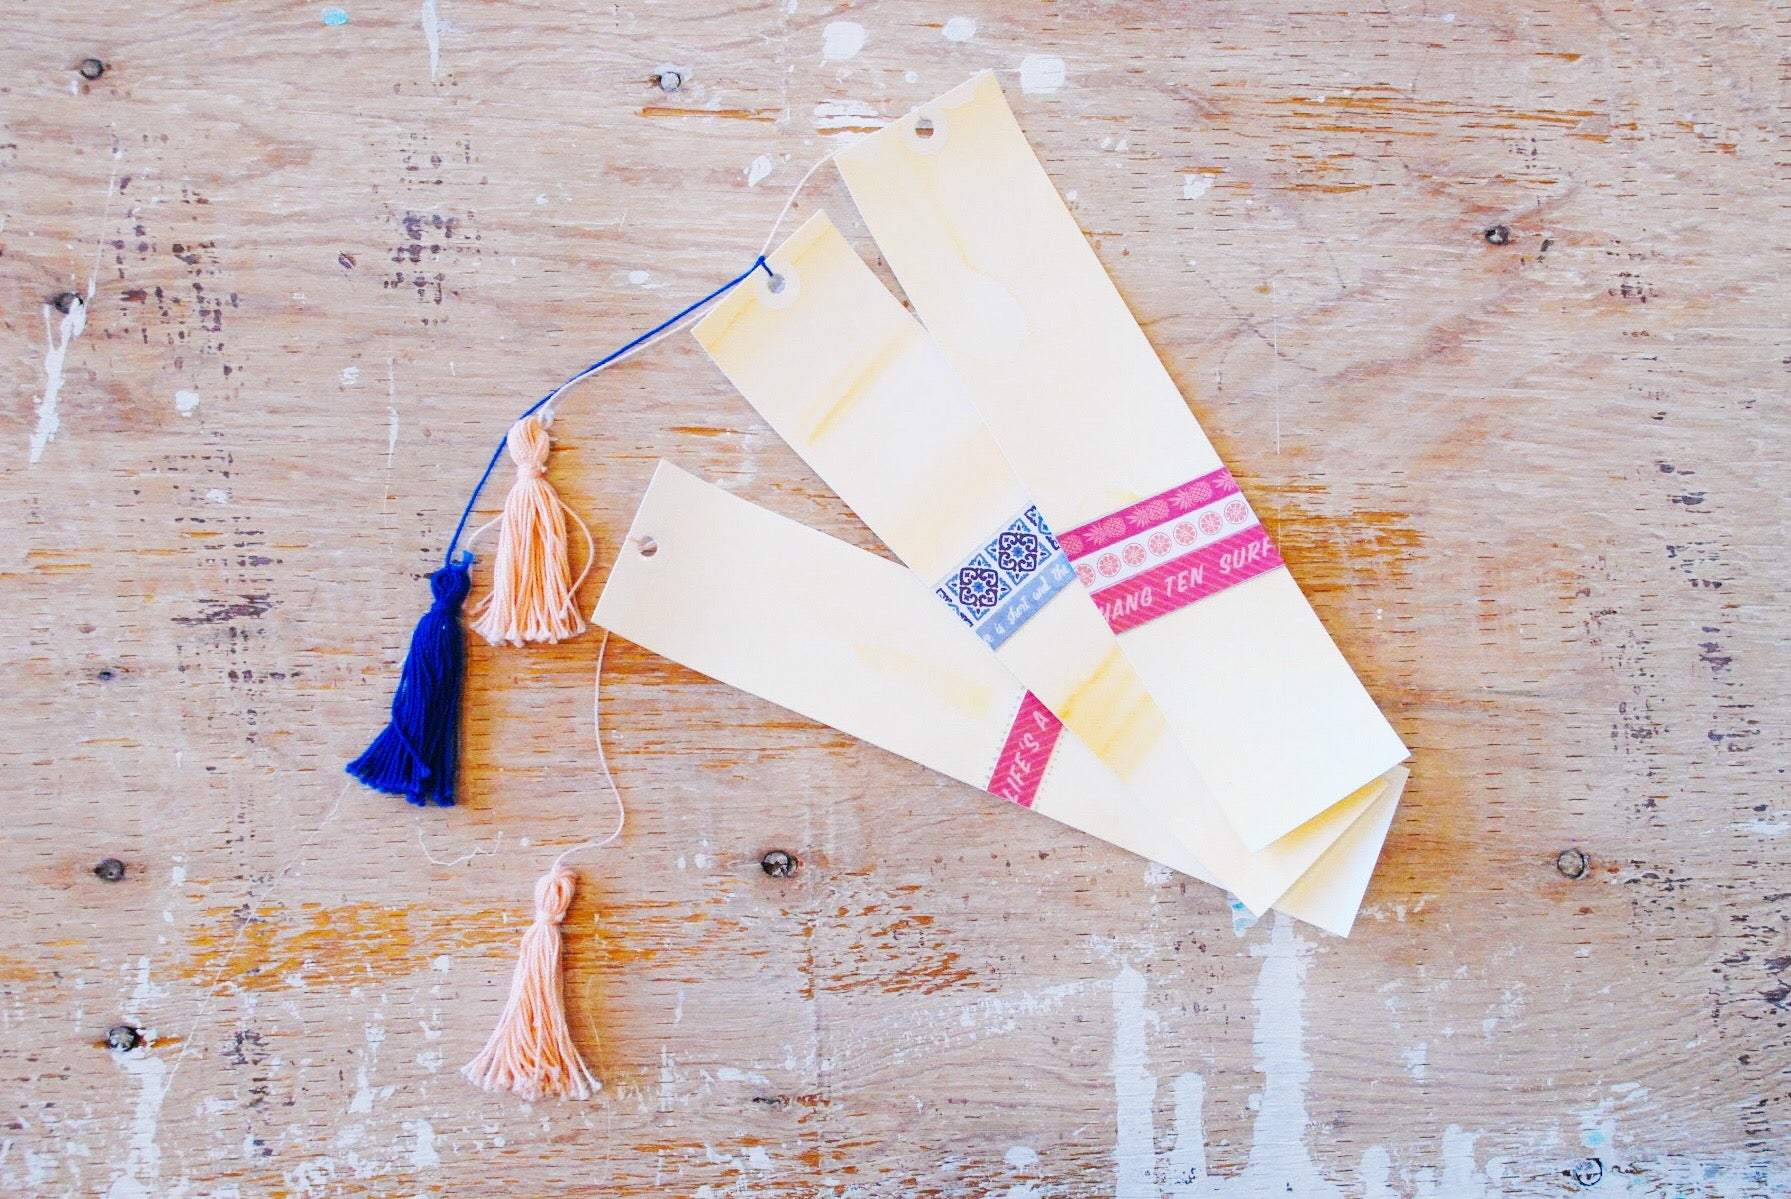 Watercolour Madness | Orange & Pink/Blue Variant | Handmade Watercolour Bookmarks | orange watercolour background with various designs on it | Navy or coral tassels | Thoughtfully Handmade